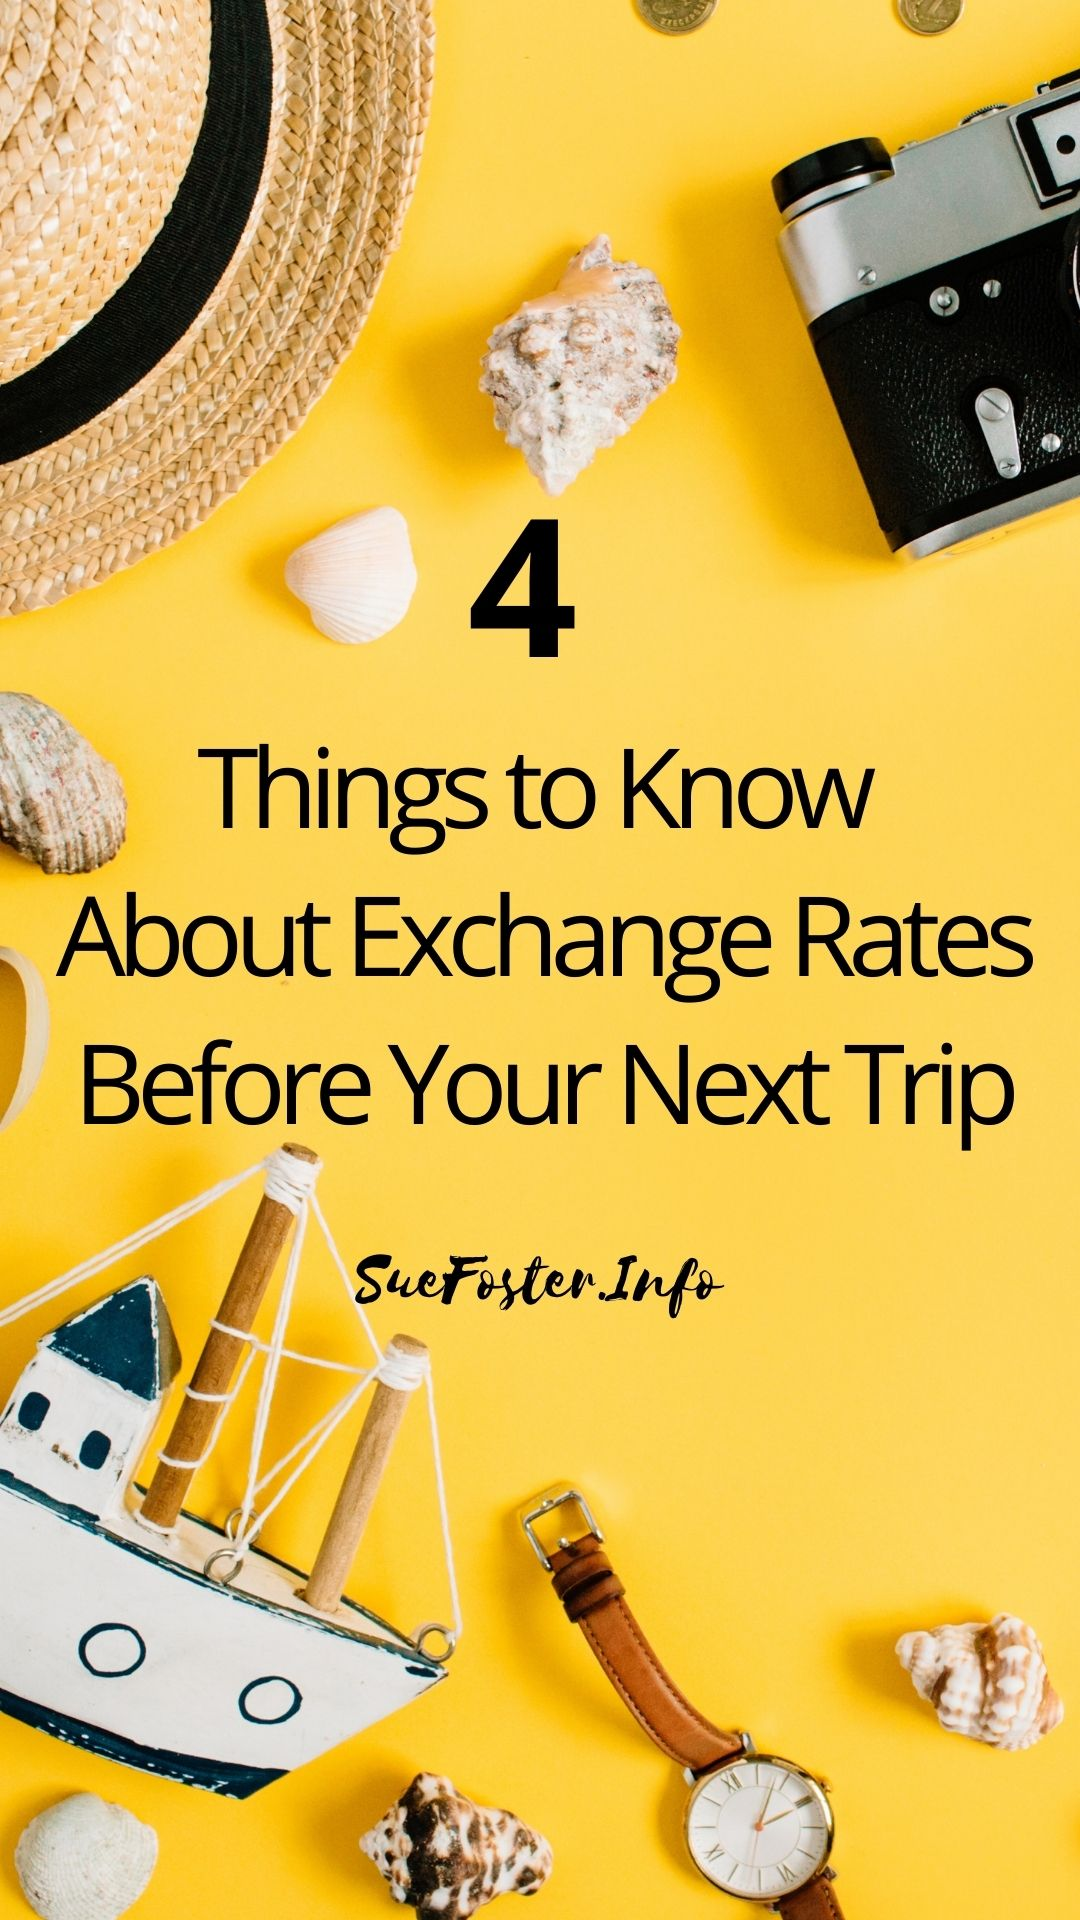 If you're not an avid traveller, it can be hard to realise the importance of exchange rates. But, in fact, they are one of the most important aspects of a holiday that you must take into consideration before travelling.